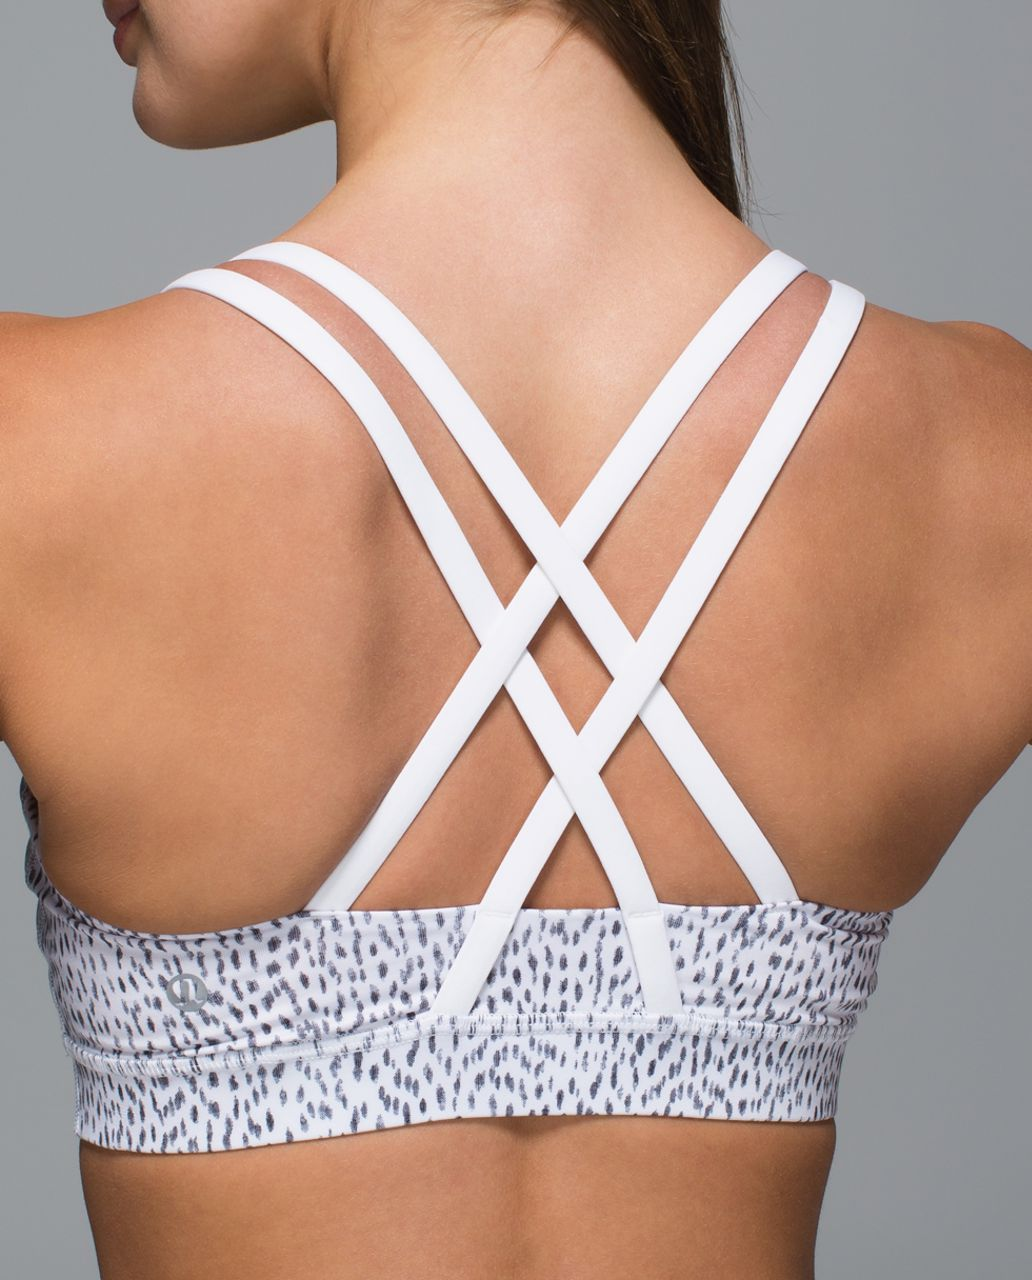 Lululemon Energy Bra - Dottie Dash White Black / White